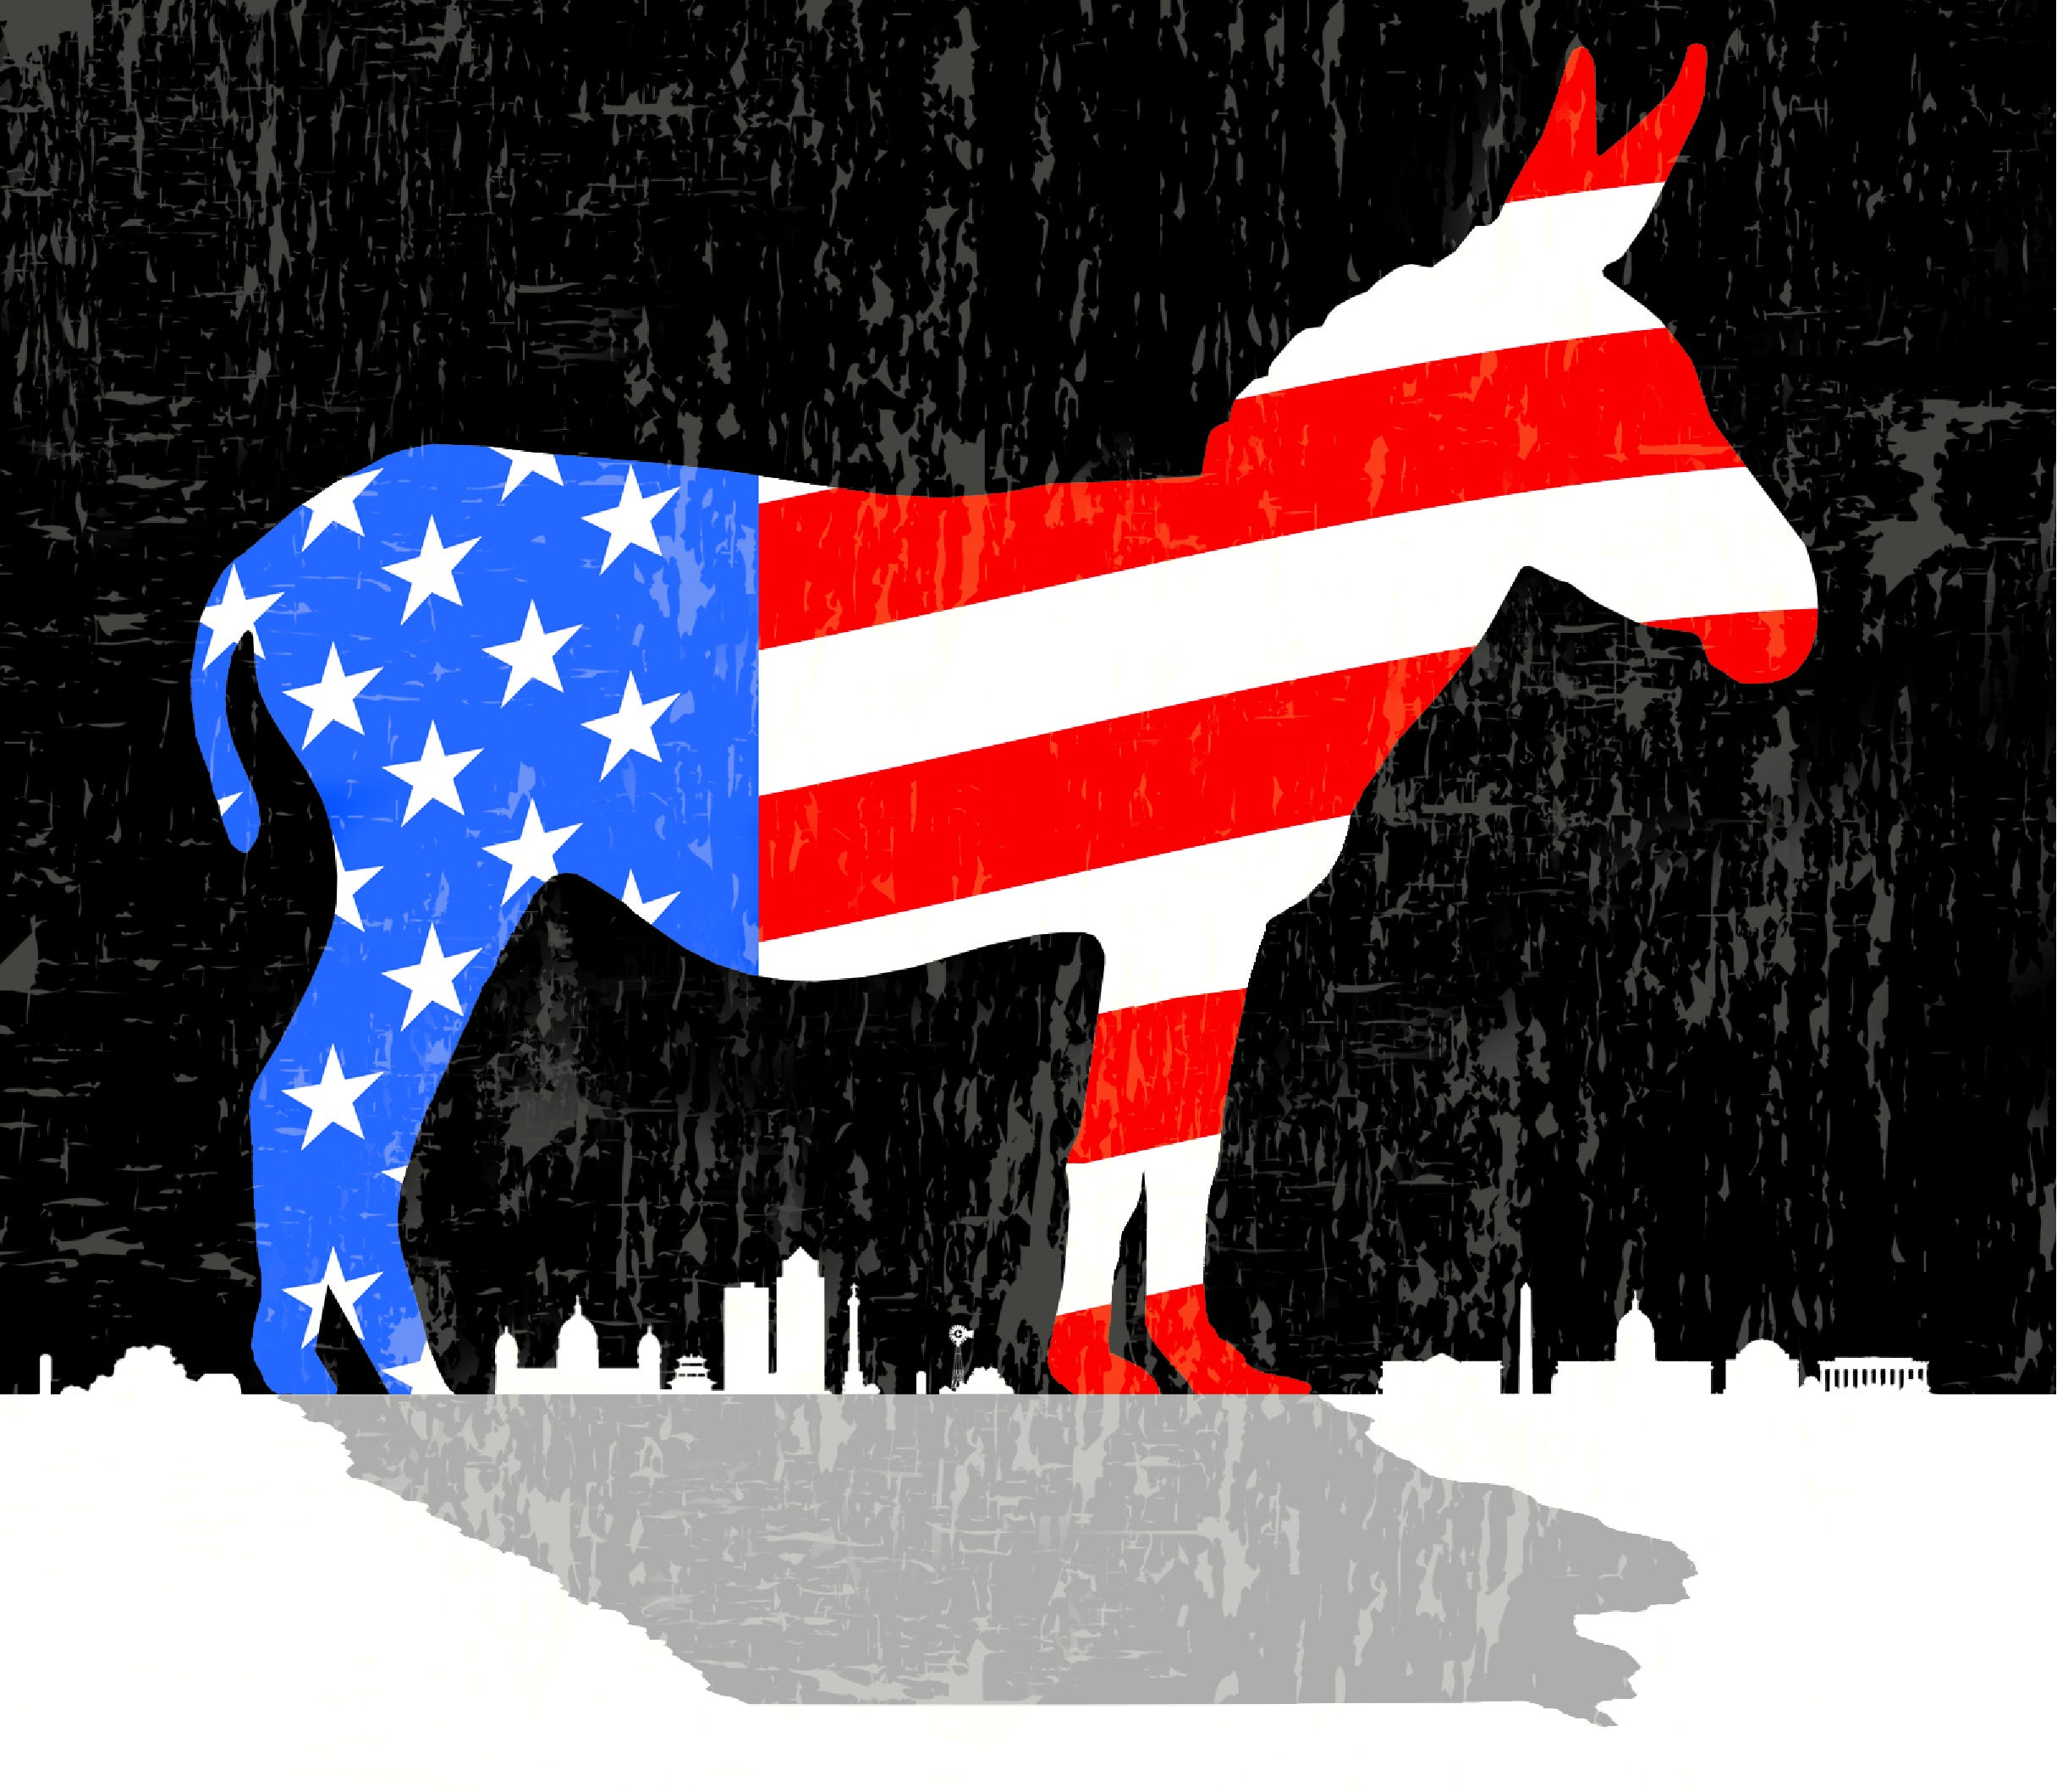 Democratic Party's candidates for president